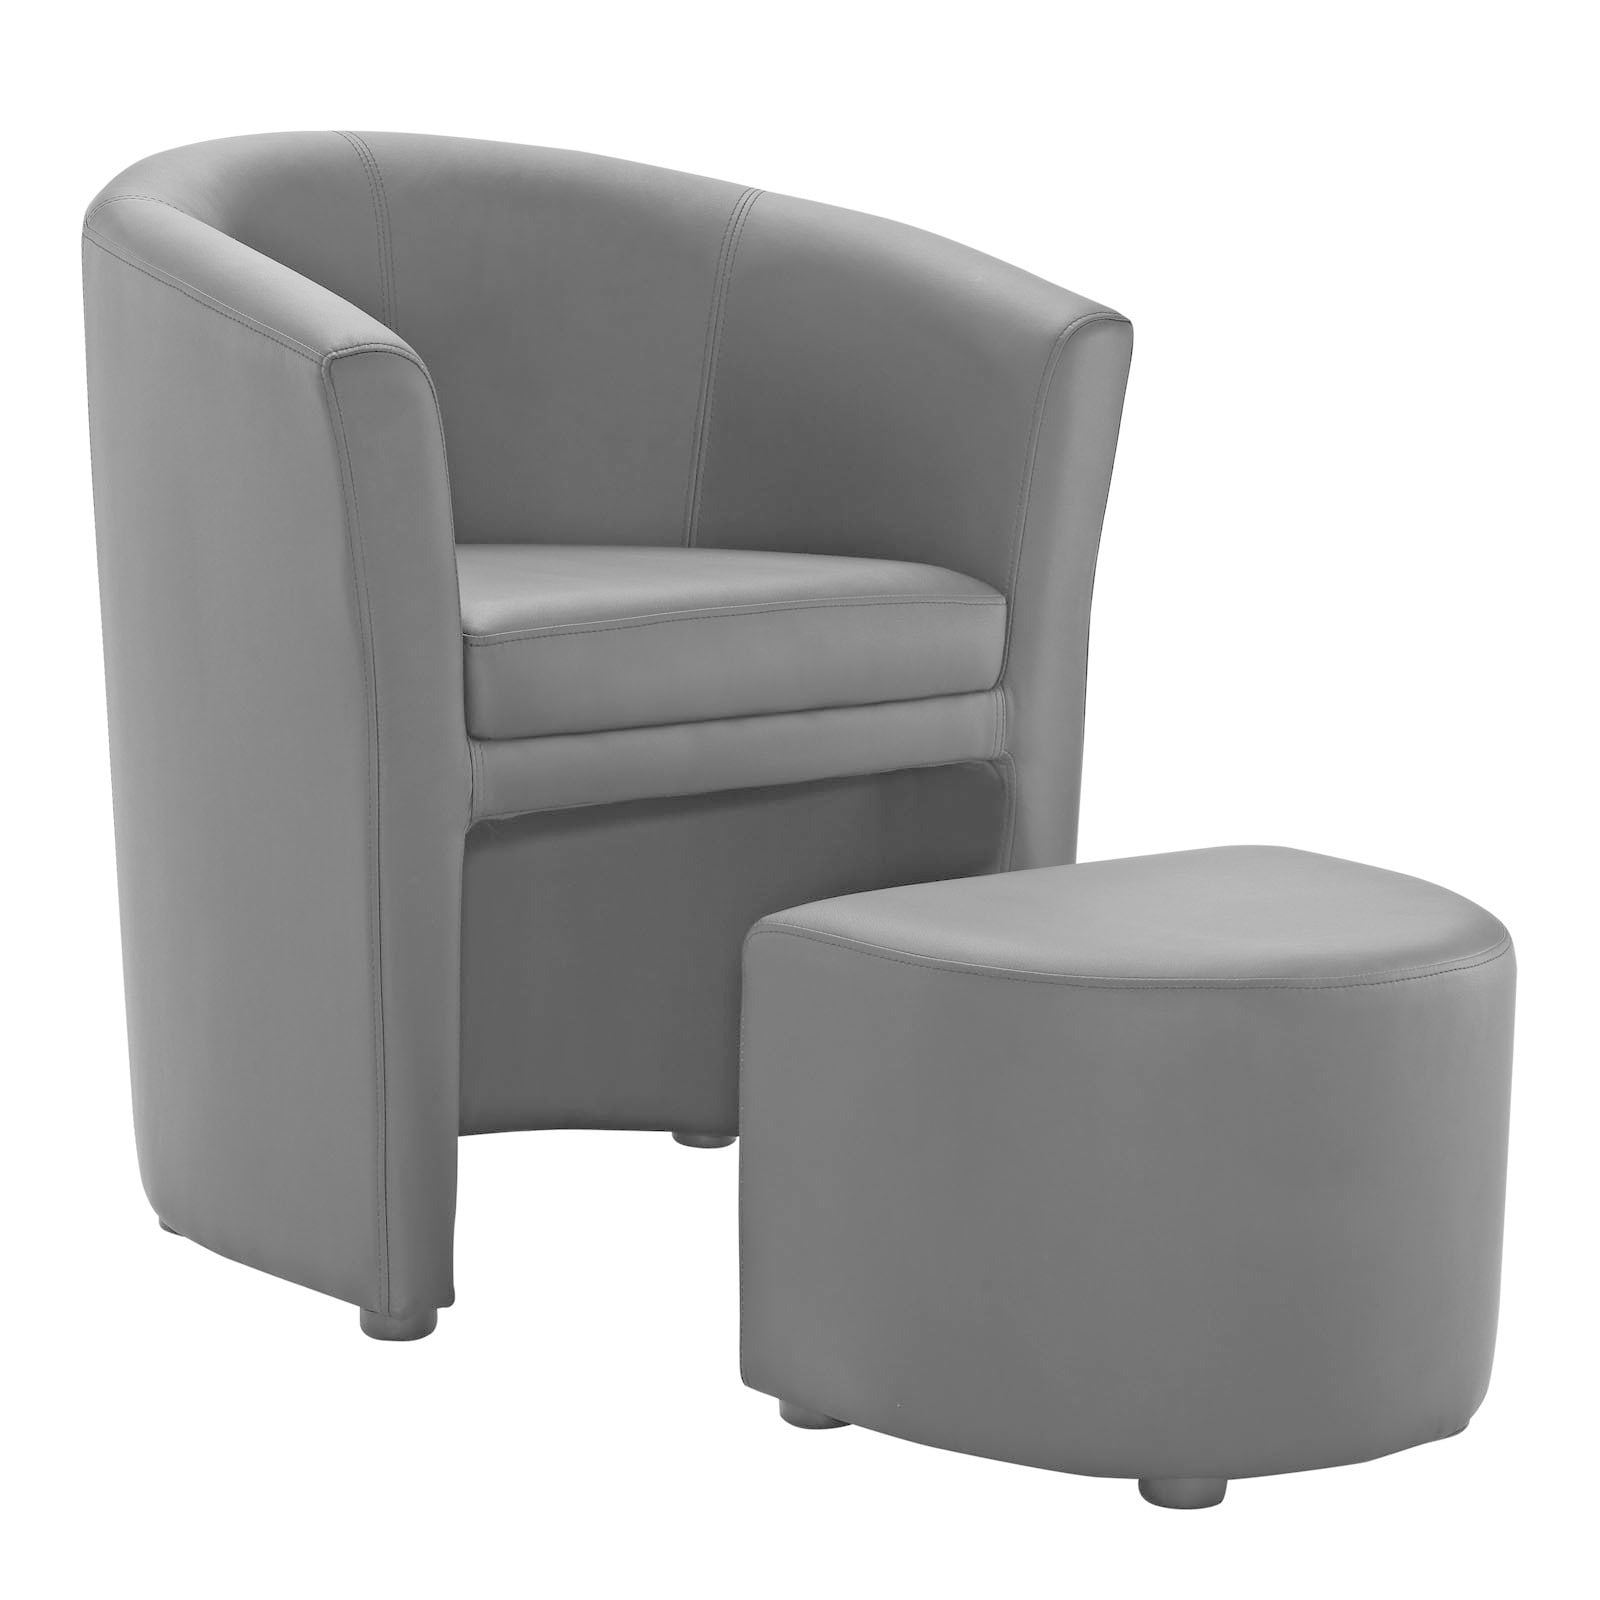 Attractive White Armchair With Ottoman #11 - Divulge Modern Leatherette Armchair And Ottoman - Free Shipping Today -  Overstock - 16871686